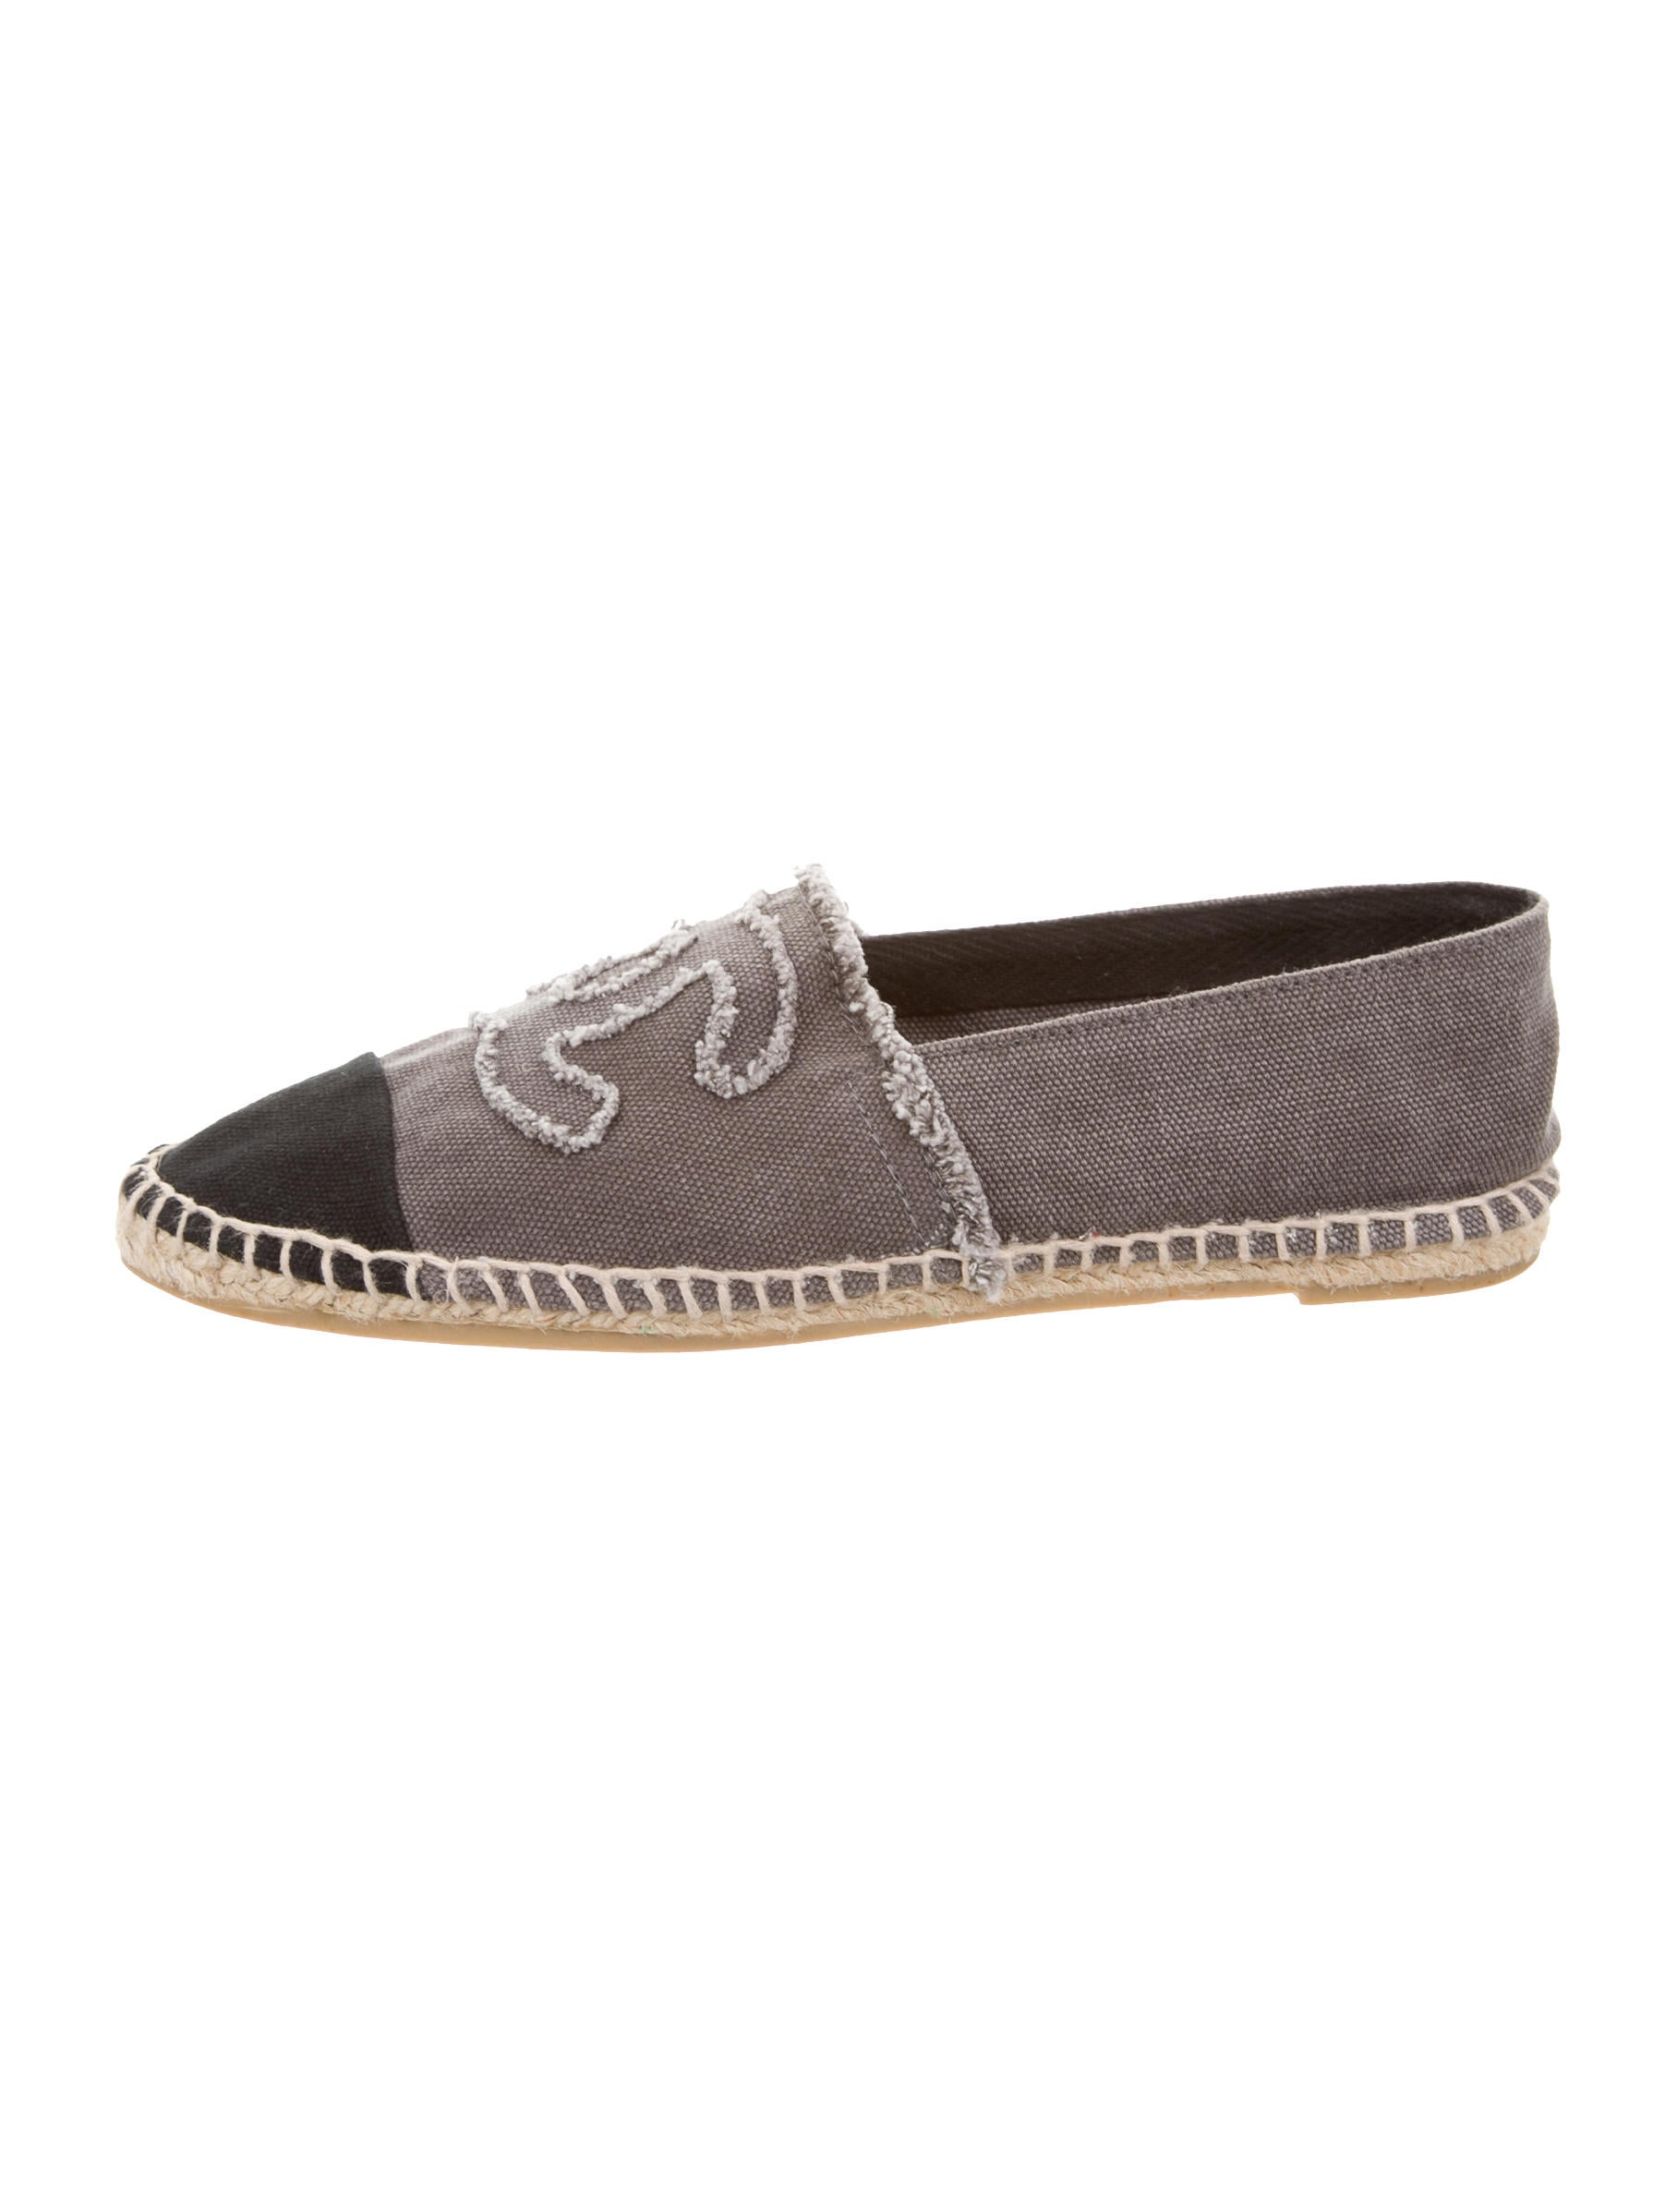 chanel canvas espadrille flats shoes cha164857 the